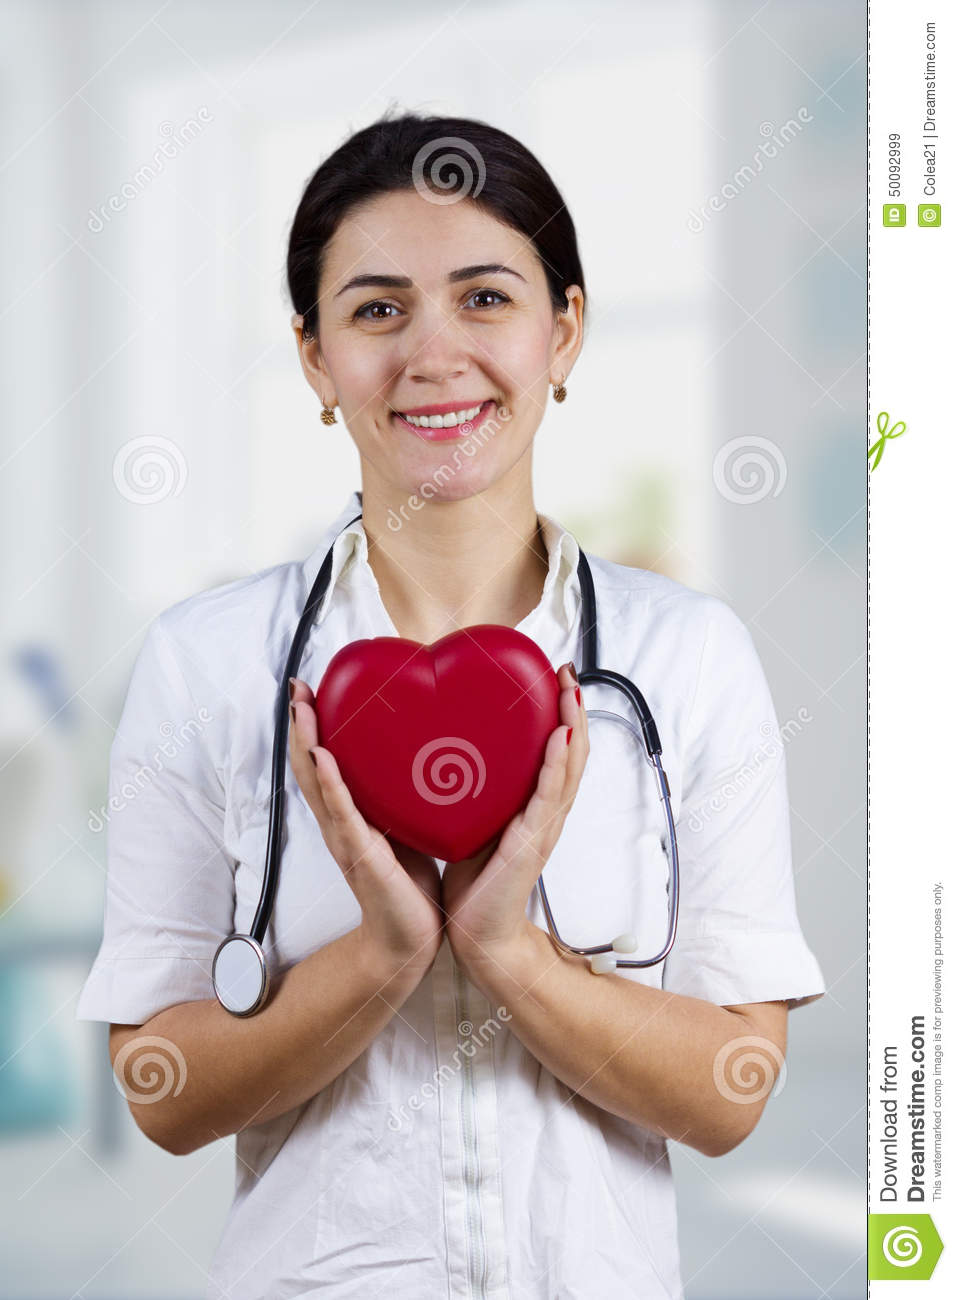 Smiling Female doctor holding red heart and stethascope